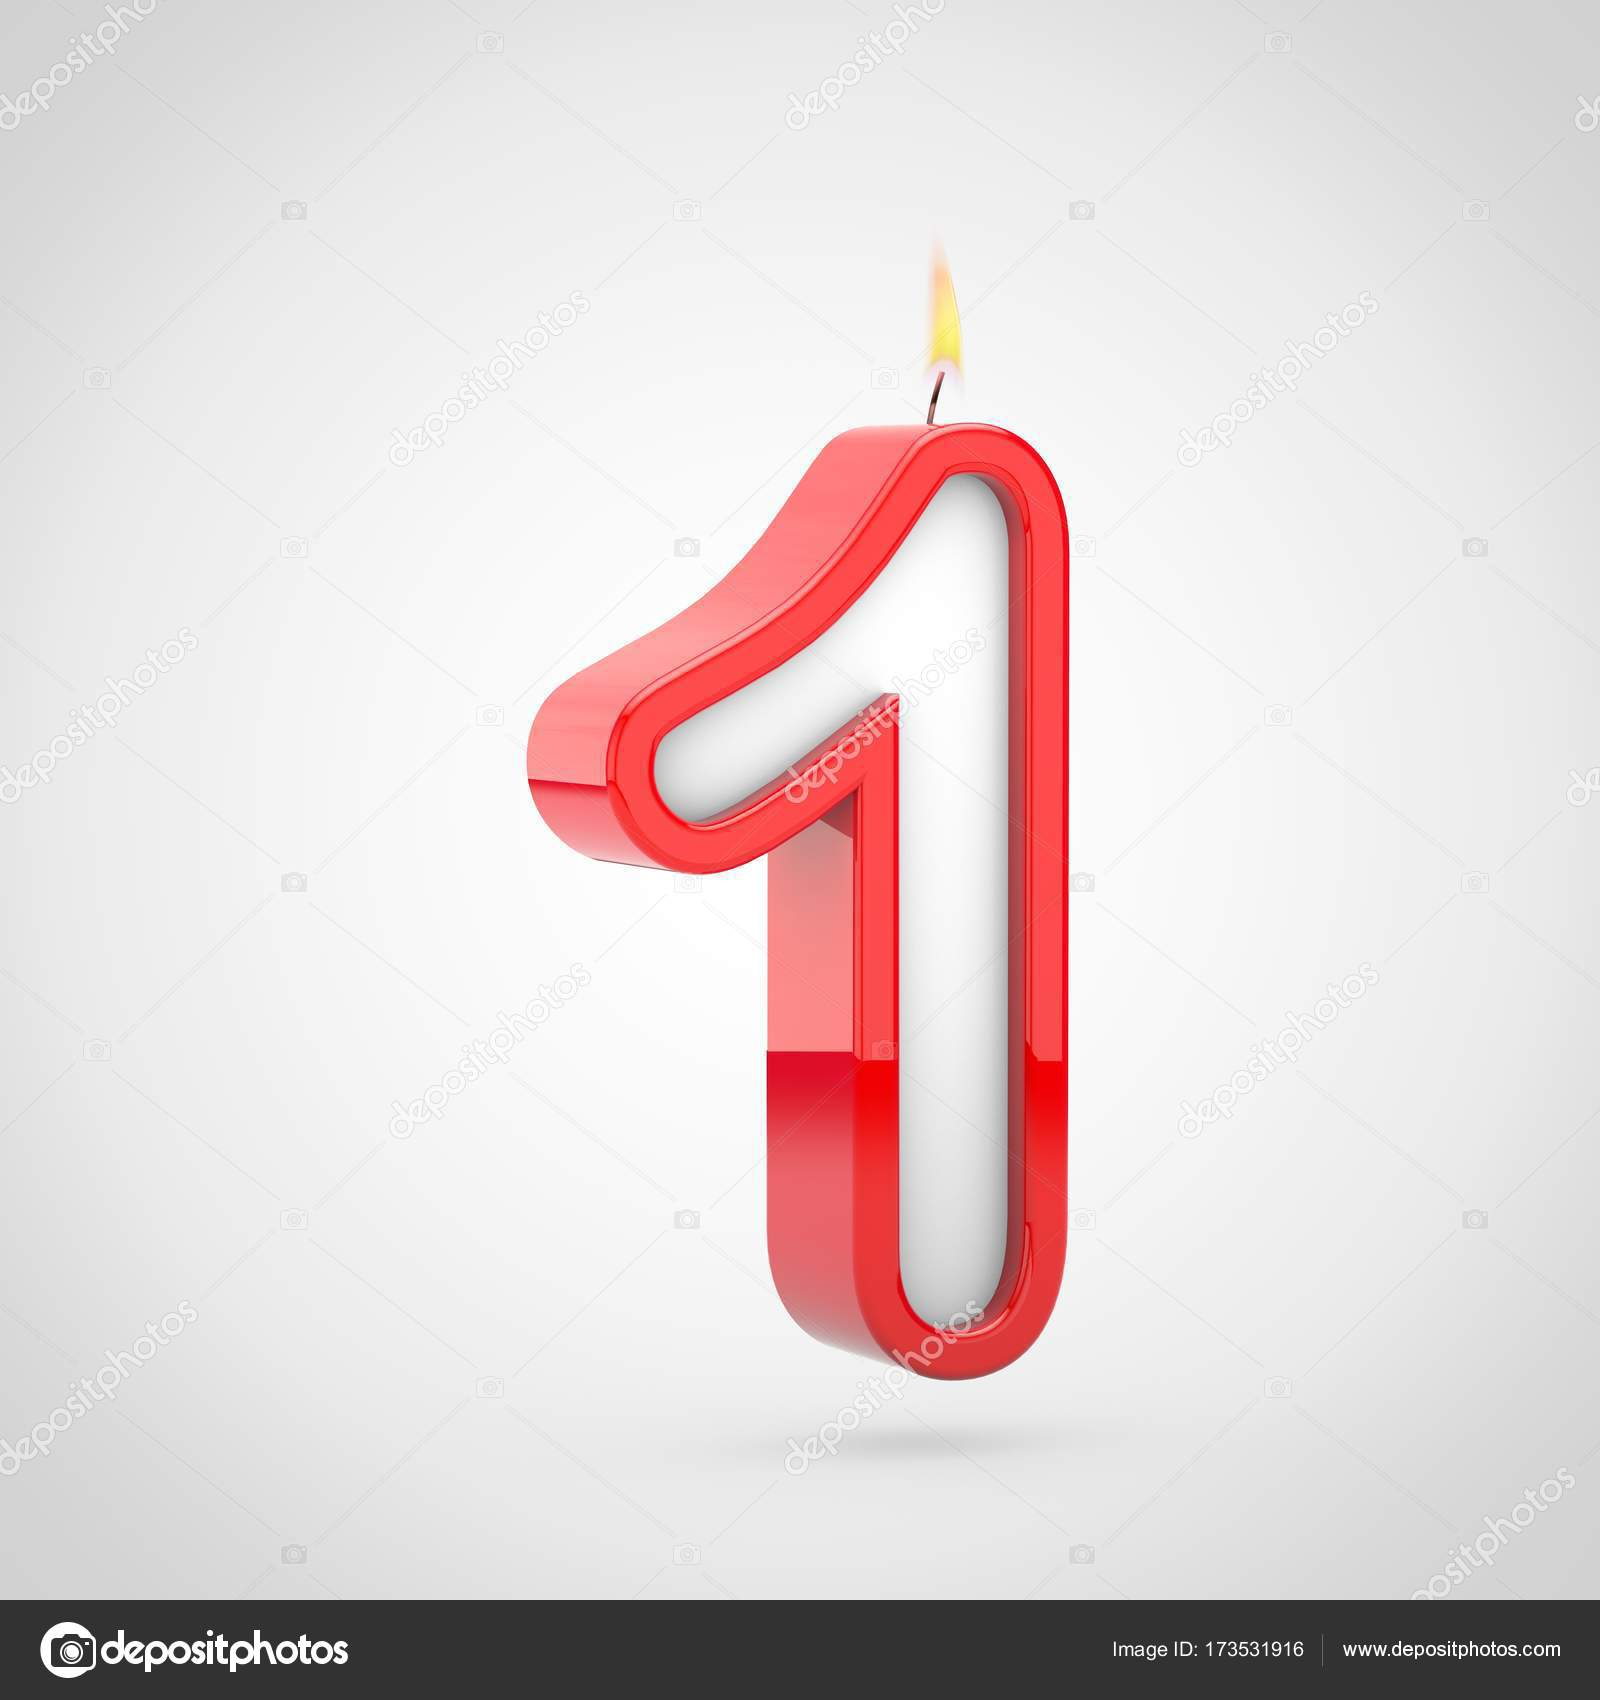 3D Render Of Birthday Candle Number 1 With Wick And Flame Isolated On White Background Photo By Whitebarbie